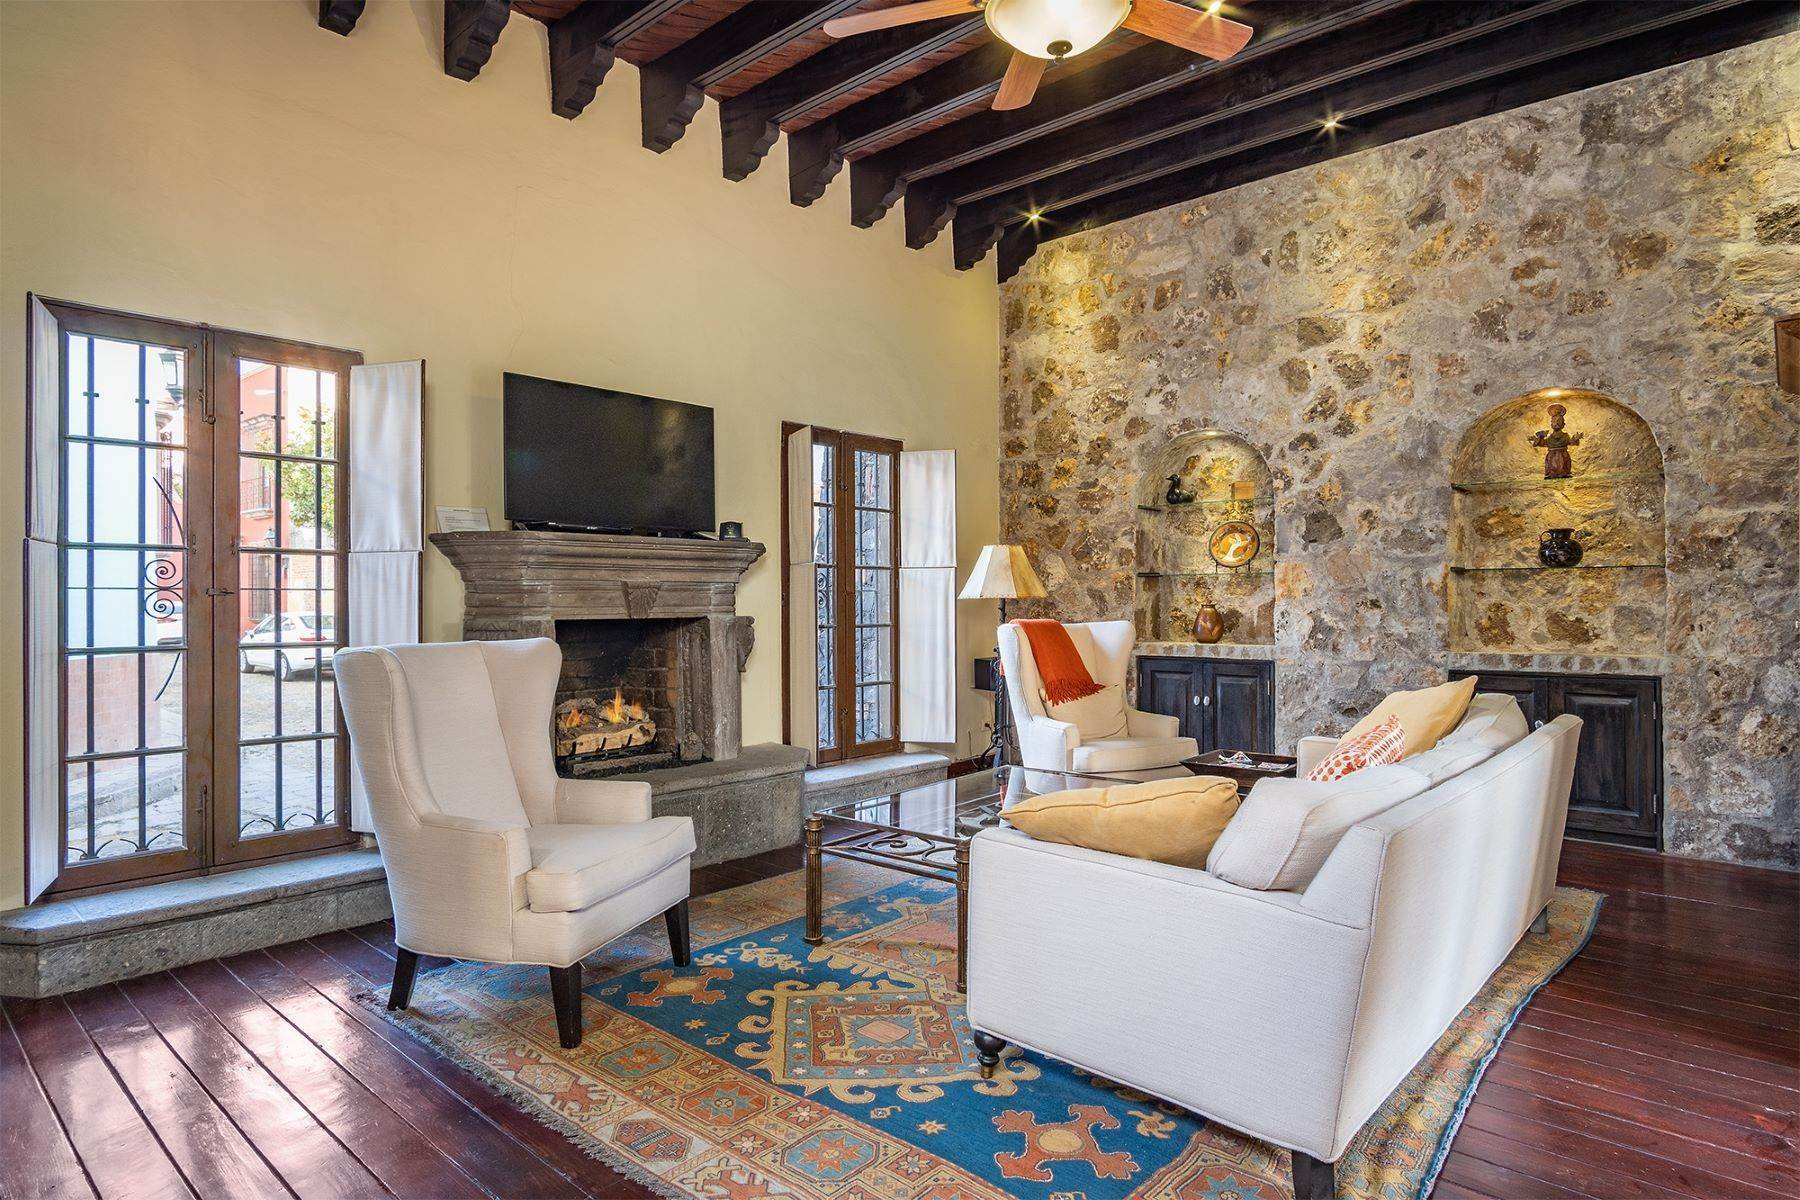 31. Single Family Homes for Sale at Casa William Gracia 9 San Miguel De Allende, Guanajuato 37700 Mexico